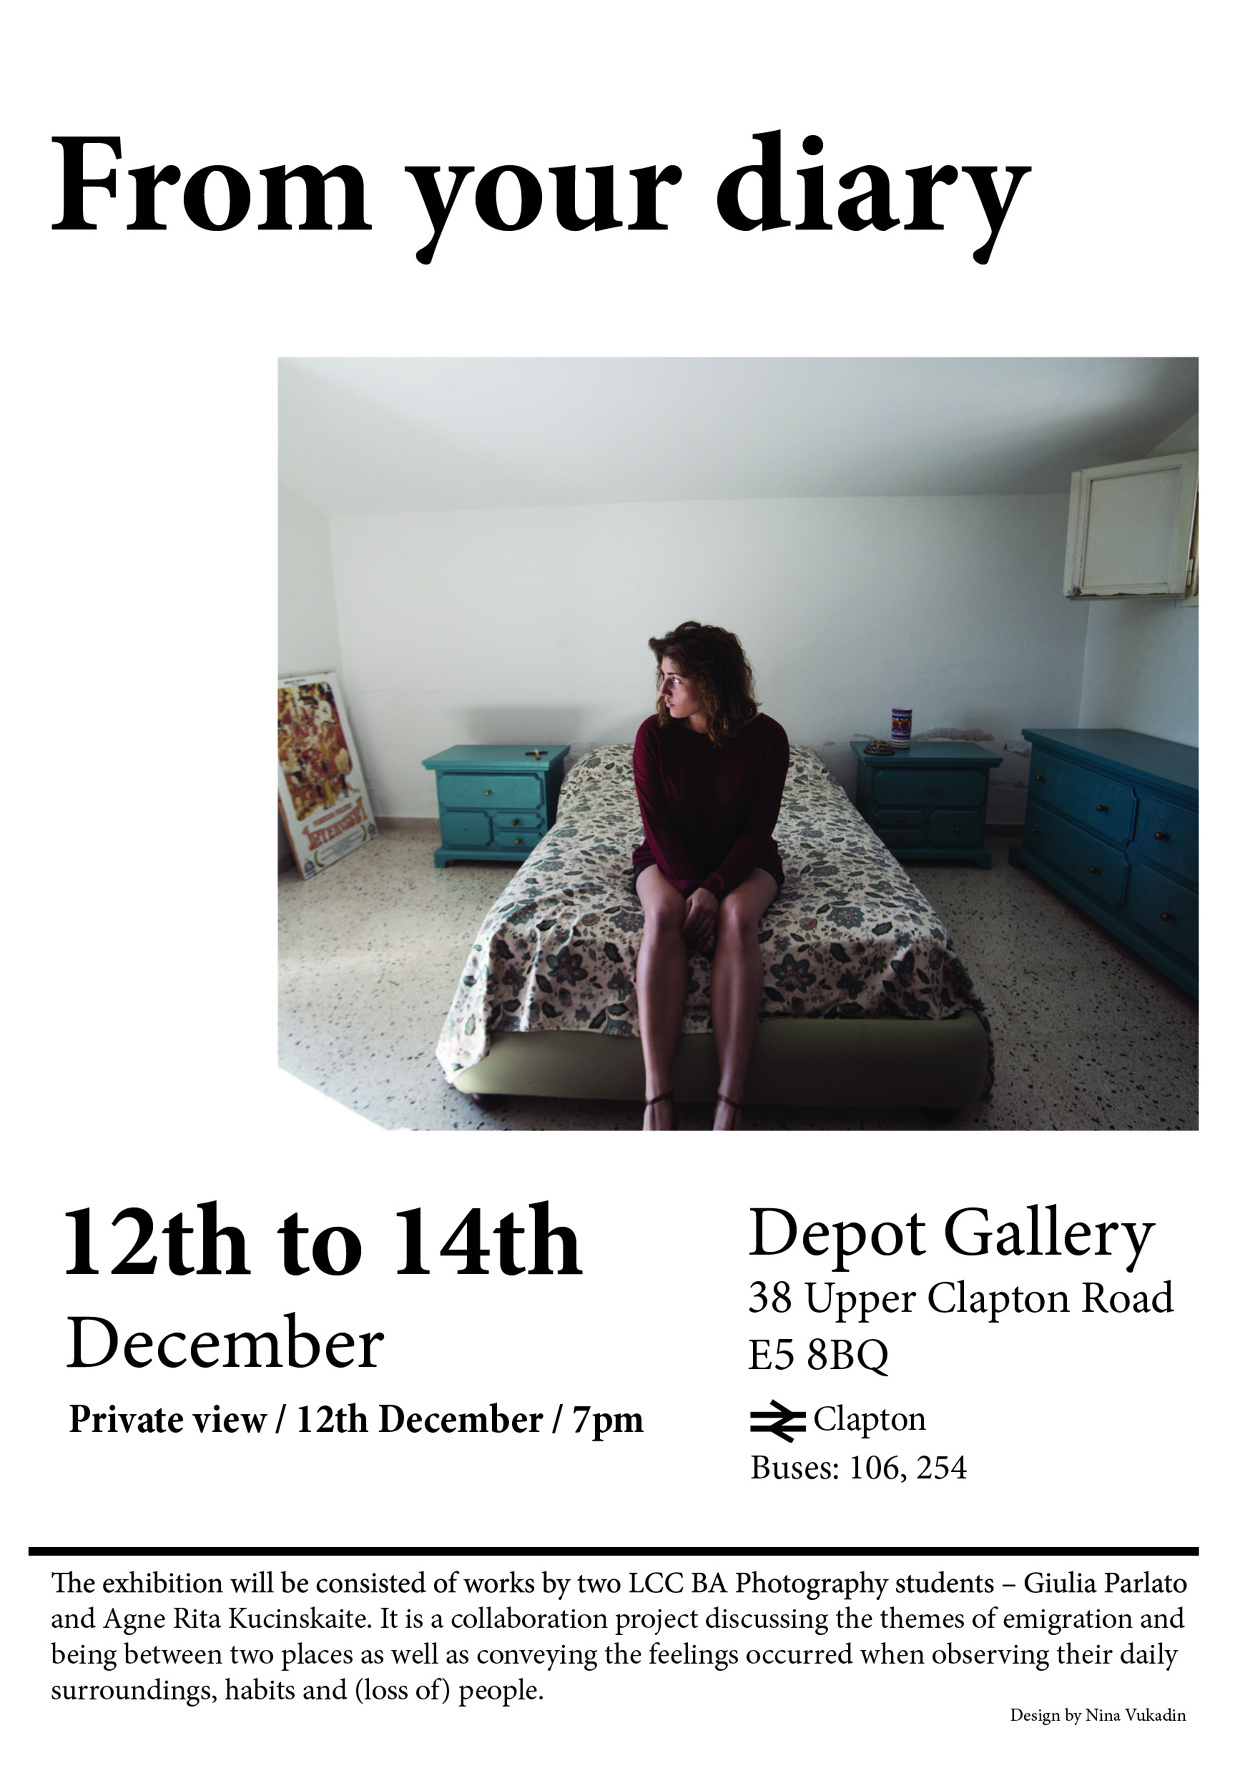 These Are Posters I Did For Two Photography Exhibitions By Students From London College Of Communication